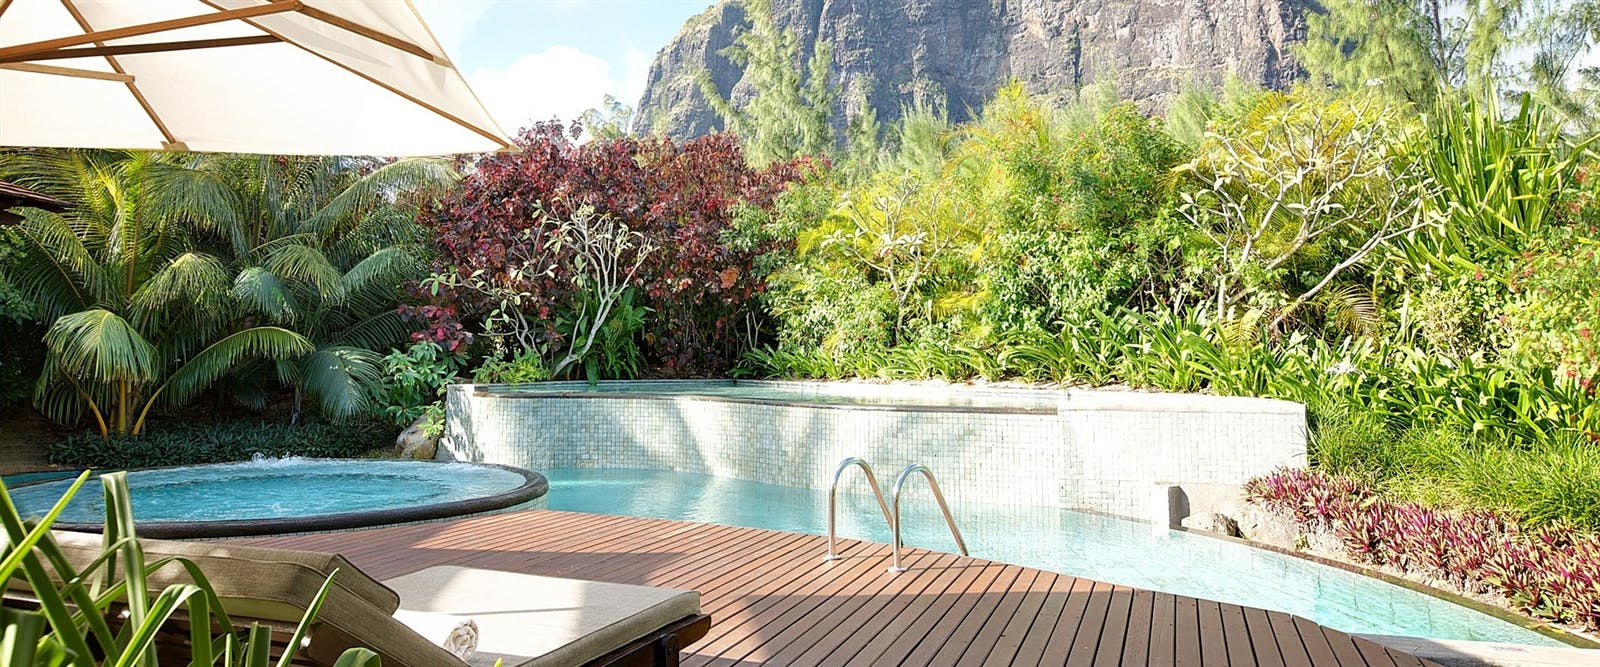 Lux Le Morne Mauritius World Renowned Luxury Hotel Afrika Et Tour Horseback Riding 11 12 Spa Swimming Pool At